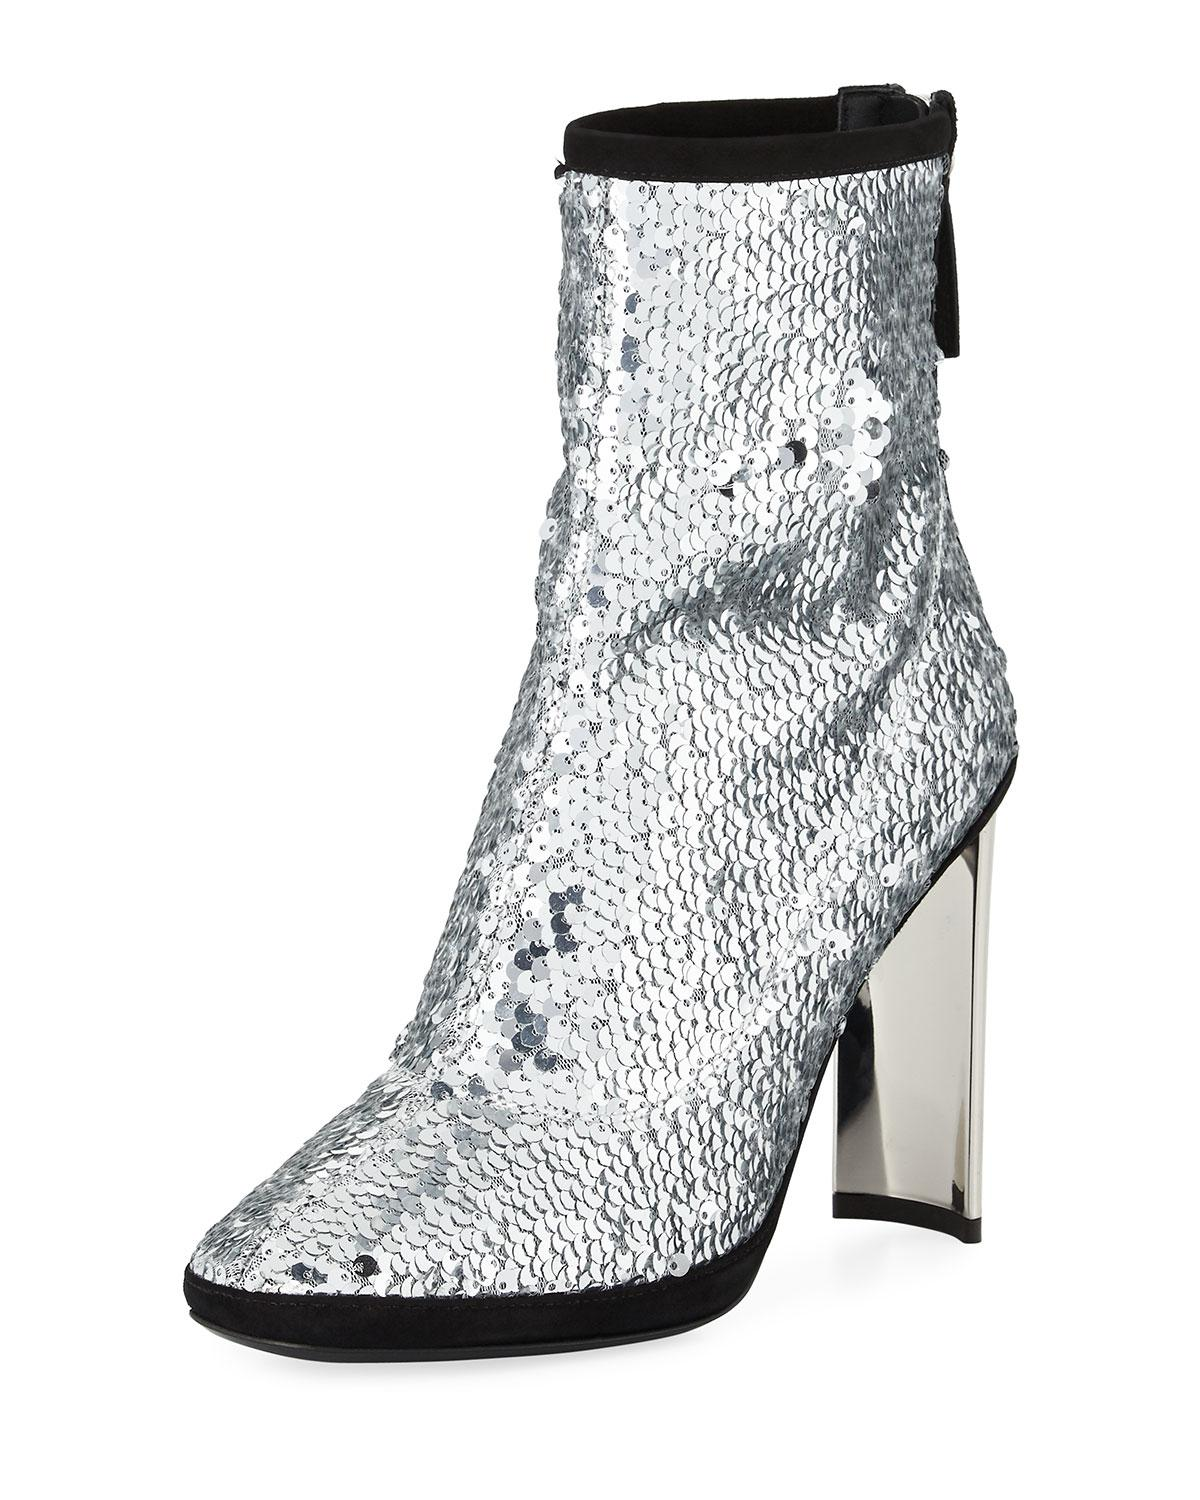 Giuseppe Giuseppe Giuseppe in Metallic 105mm Bootie Sequin Zanotti Lyst Stretch SawAx1qvnF